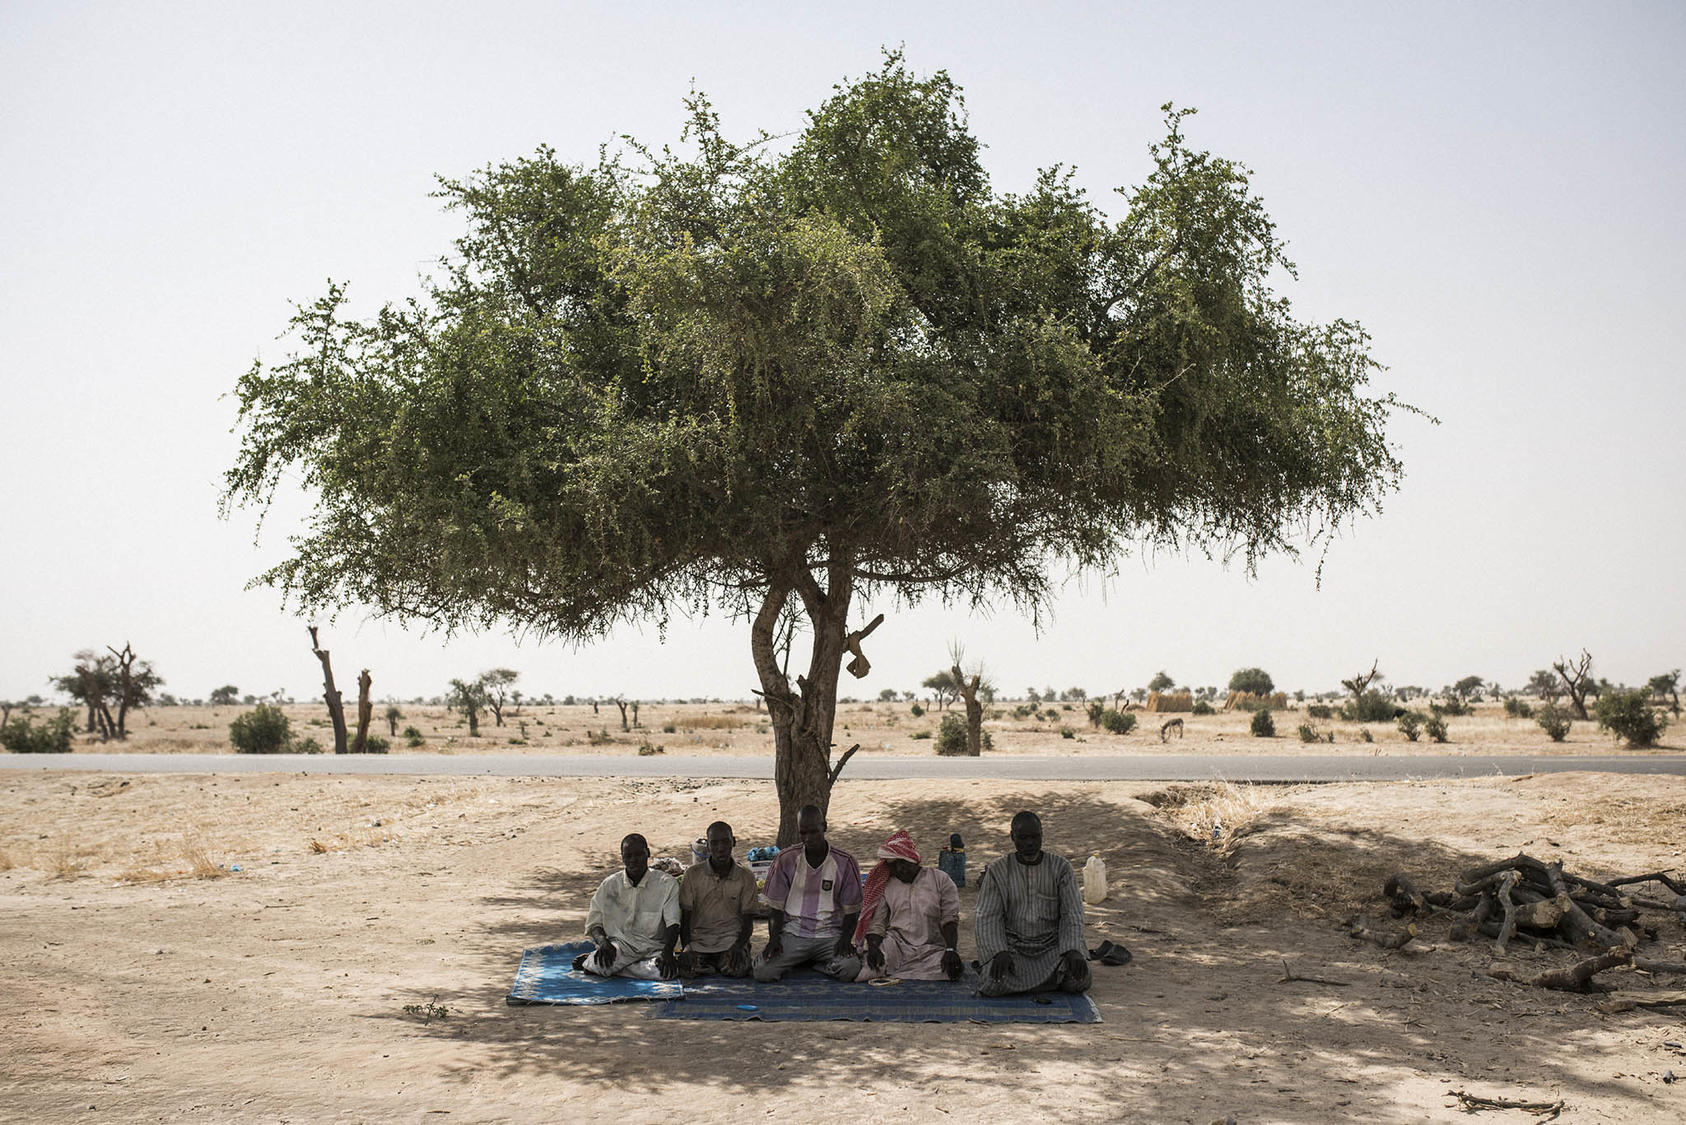 Nigerian men who fled their country's Boko Haram conflict seek shade to pray in neighboring Niger. Violence involving Boko Haram has uprooted most of the quarter-million Nigerians who have taken refuge in nearby states. (Adam Ferguson/The New York Times)